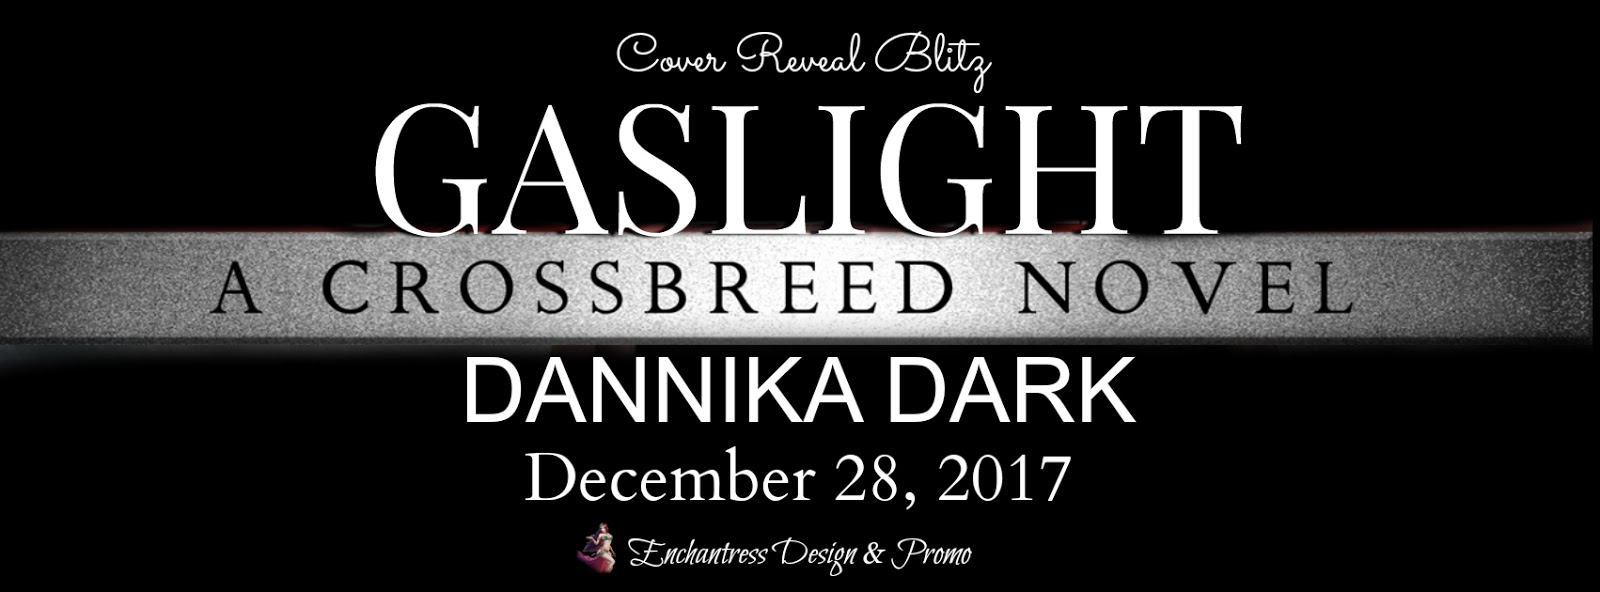 Dannika dark goodreads giveaways